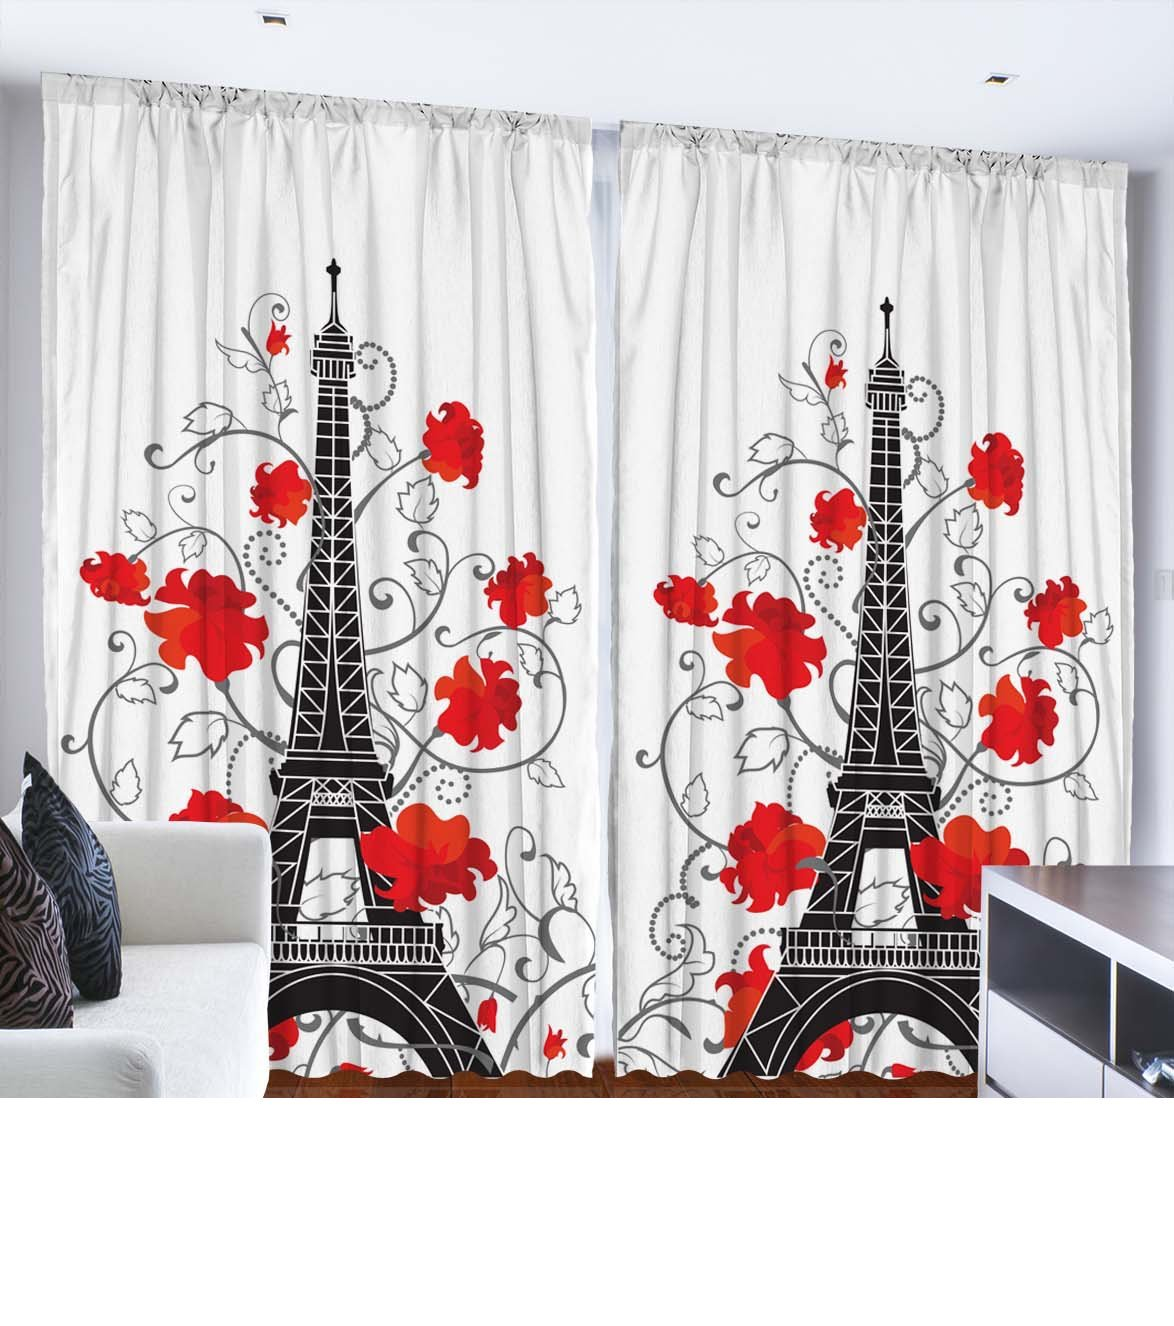 Amazon com eiffel tower paris decor for bedroom digital print curtains city decor living room decorations accessories french style paris curtain two panels